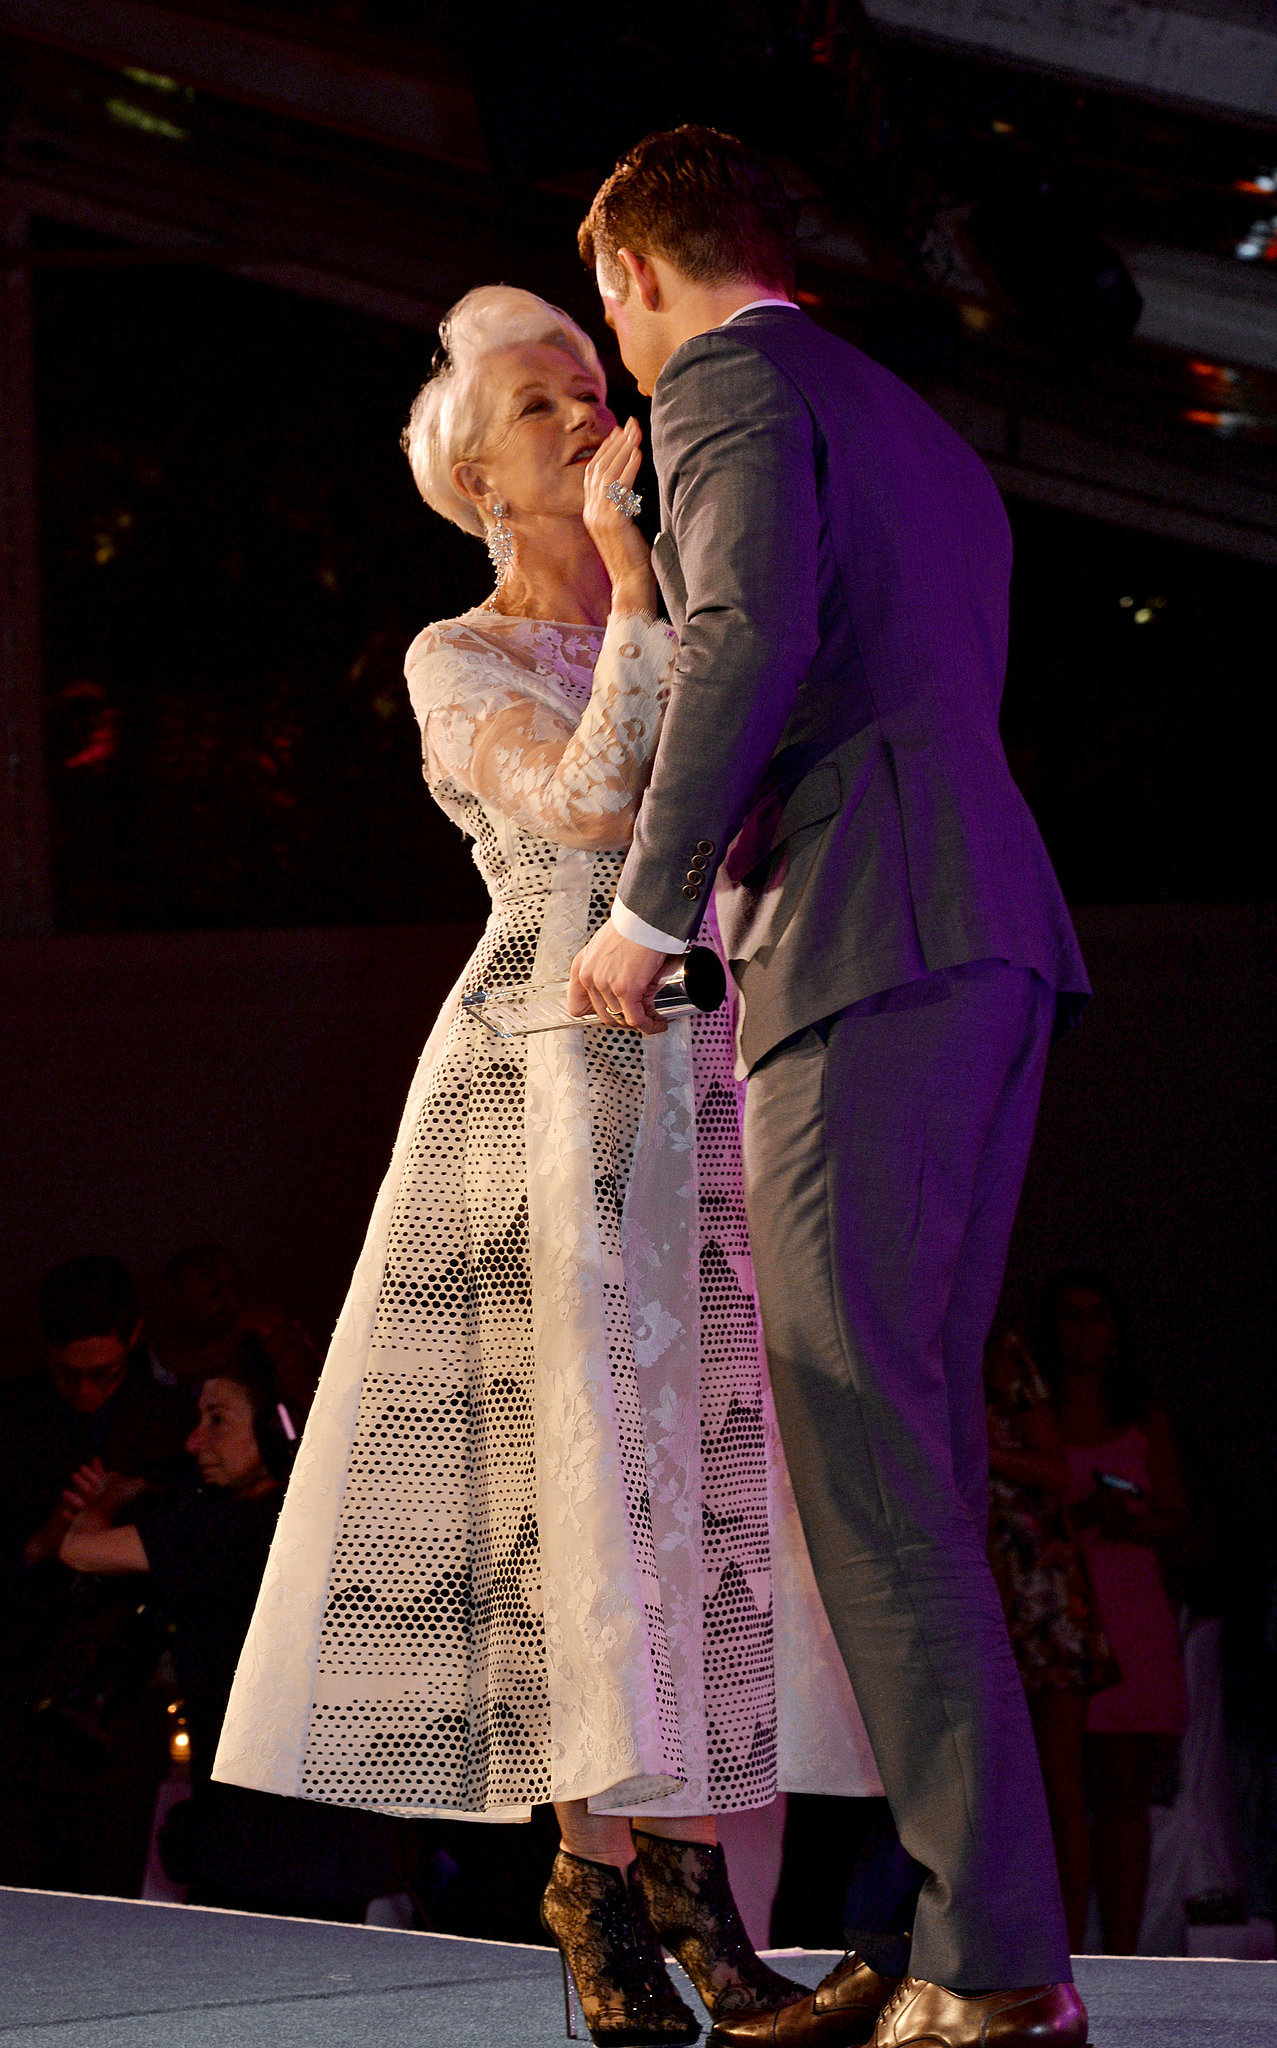 Helen Mirren chatted with Ryan Reynolds while accepting her award.